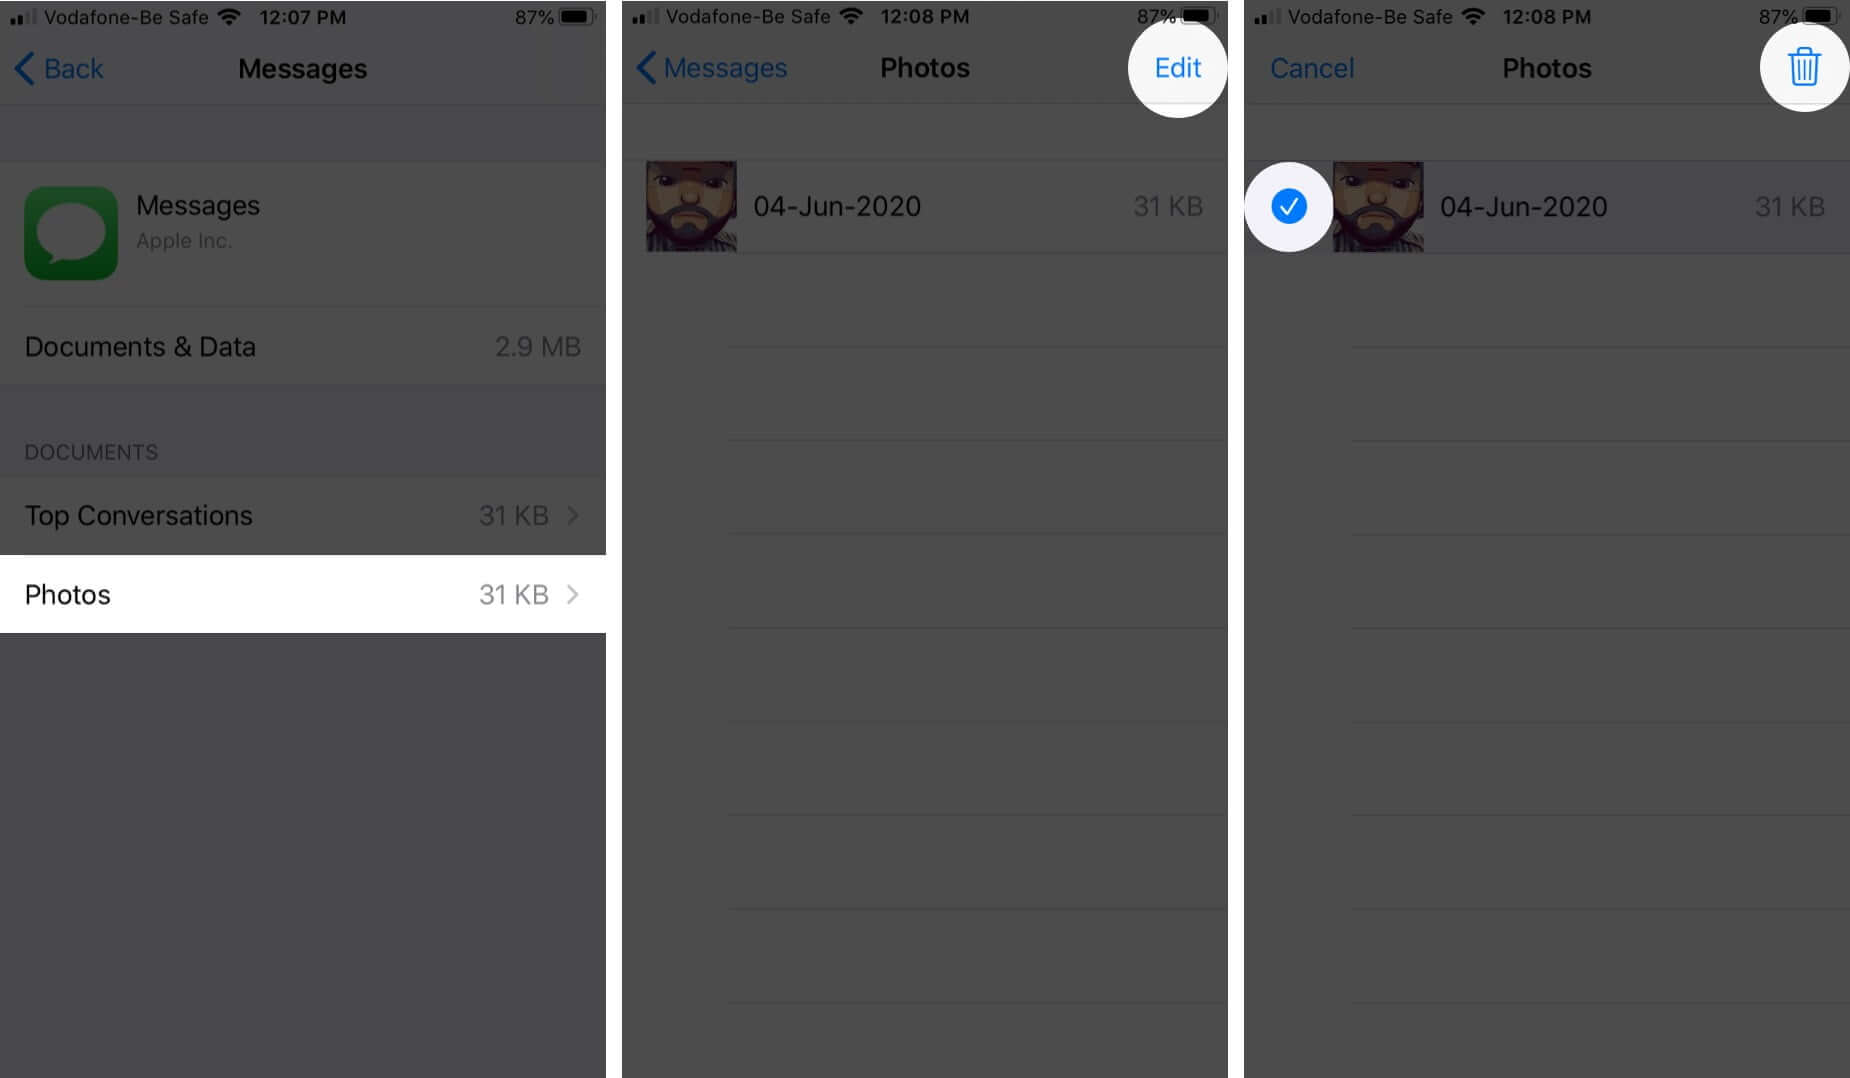 Delete Images from Messages Storage on iPhone